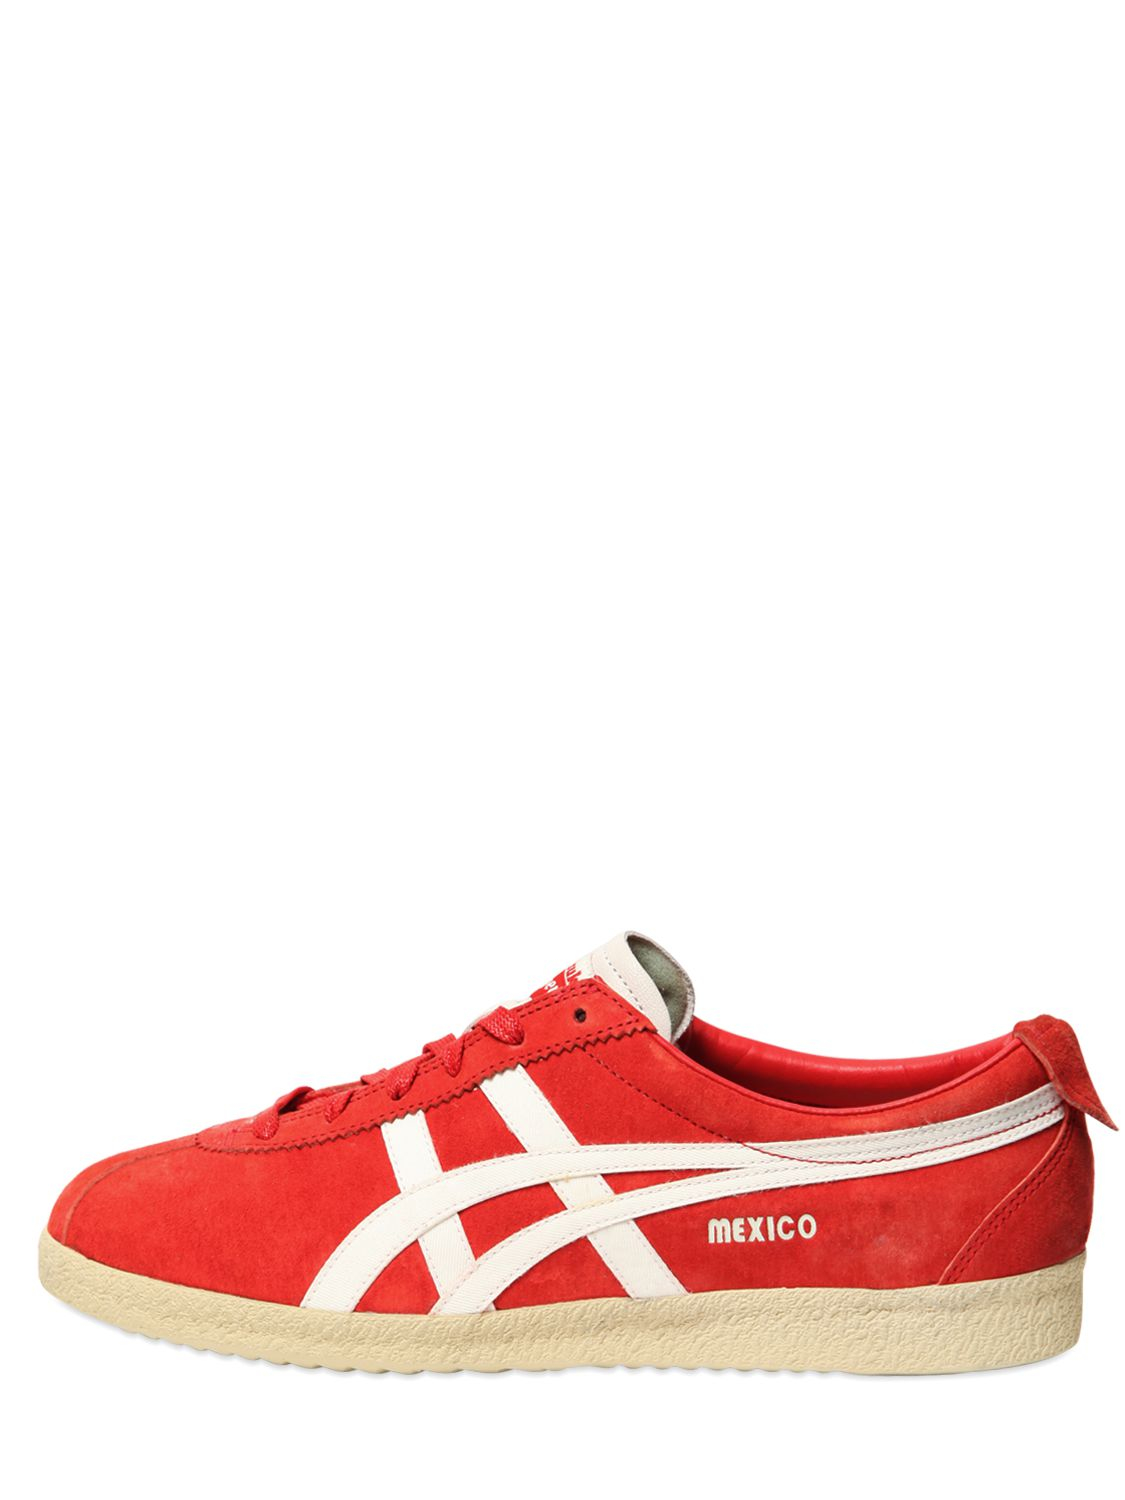 onitsuka tiger mexico delegation suede sneakers in red lyst. Black Bedroom Furniture Sets. Home Design Ideas